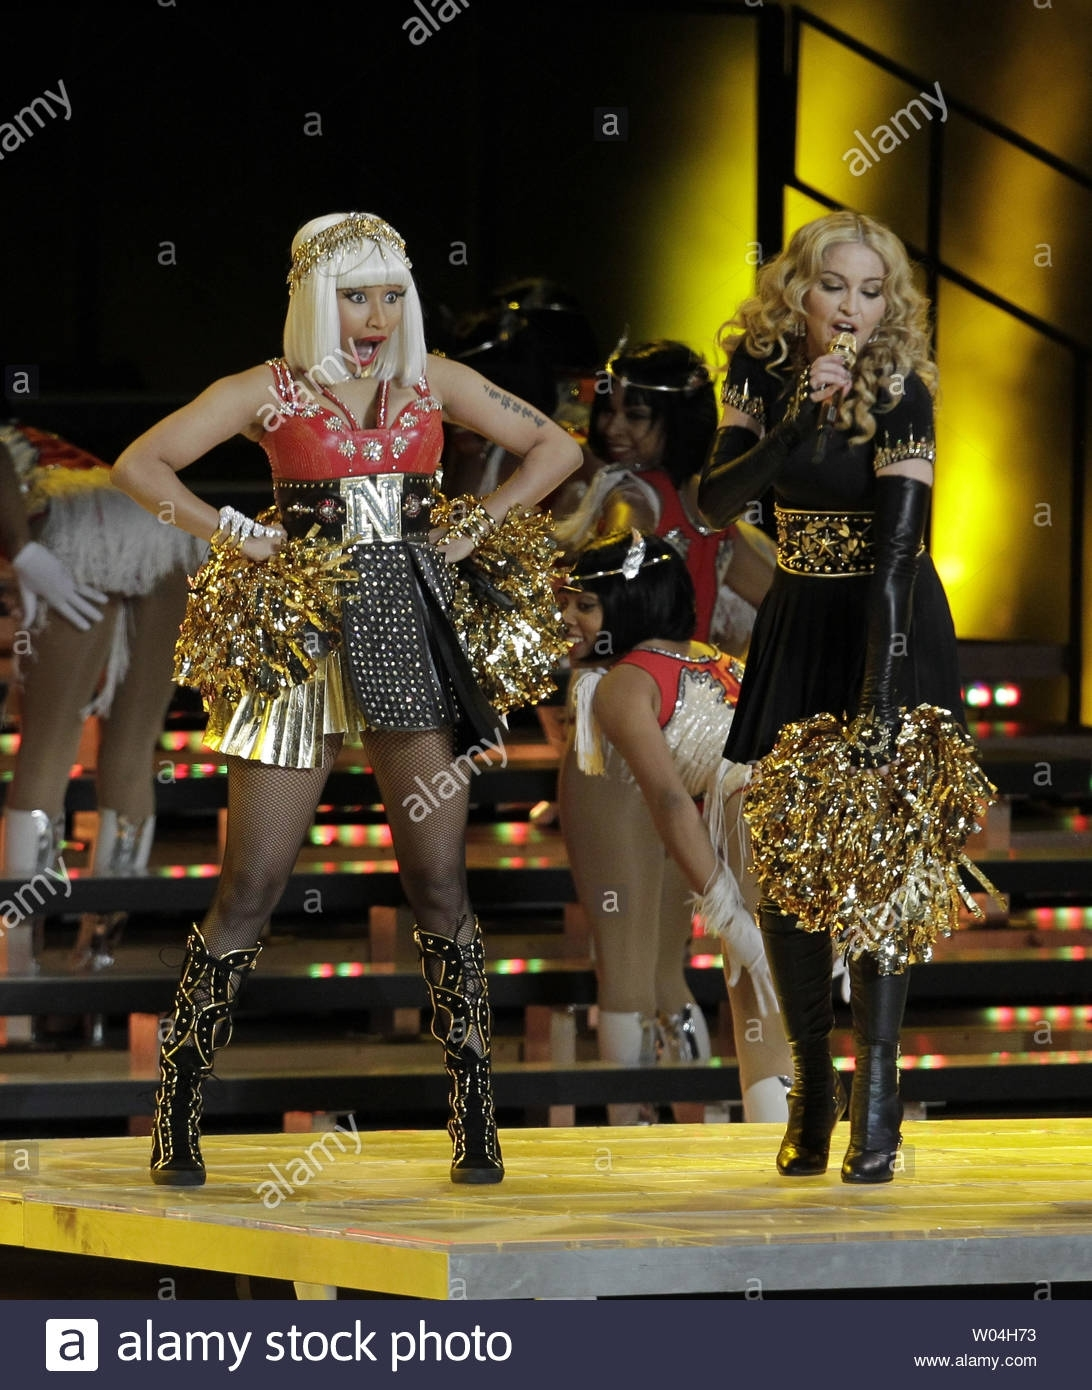 Madonna Performs With Nicki Minaj (L) During The Halftime with Nicki Minaj Super Bowl